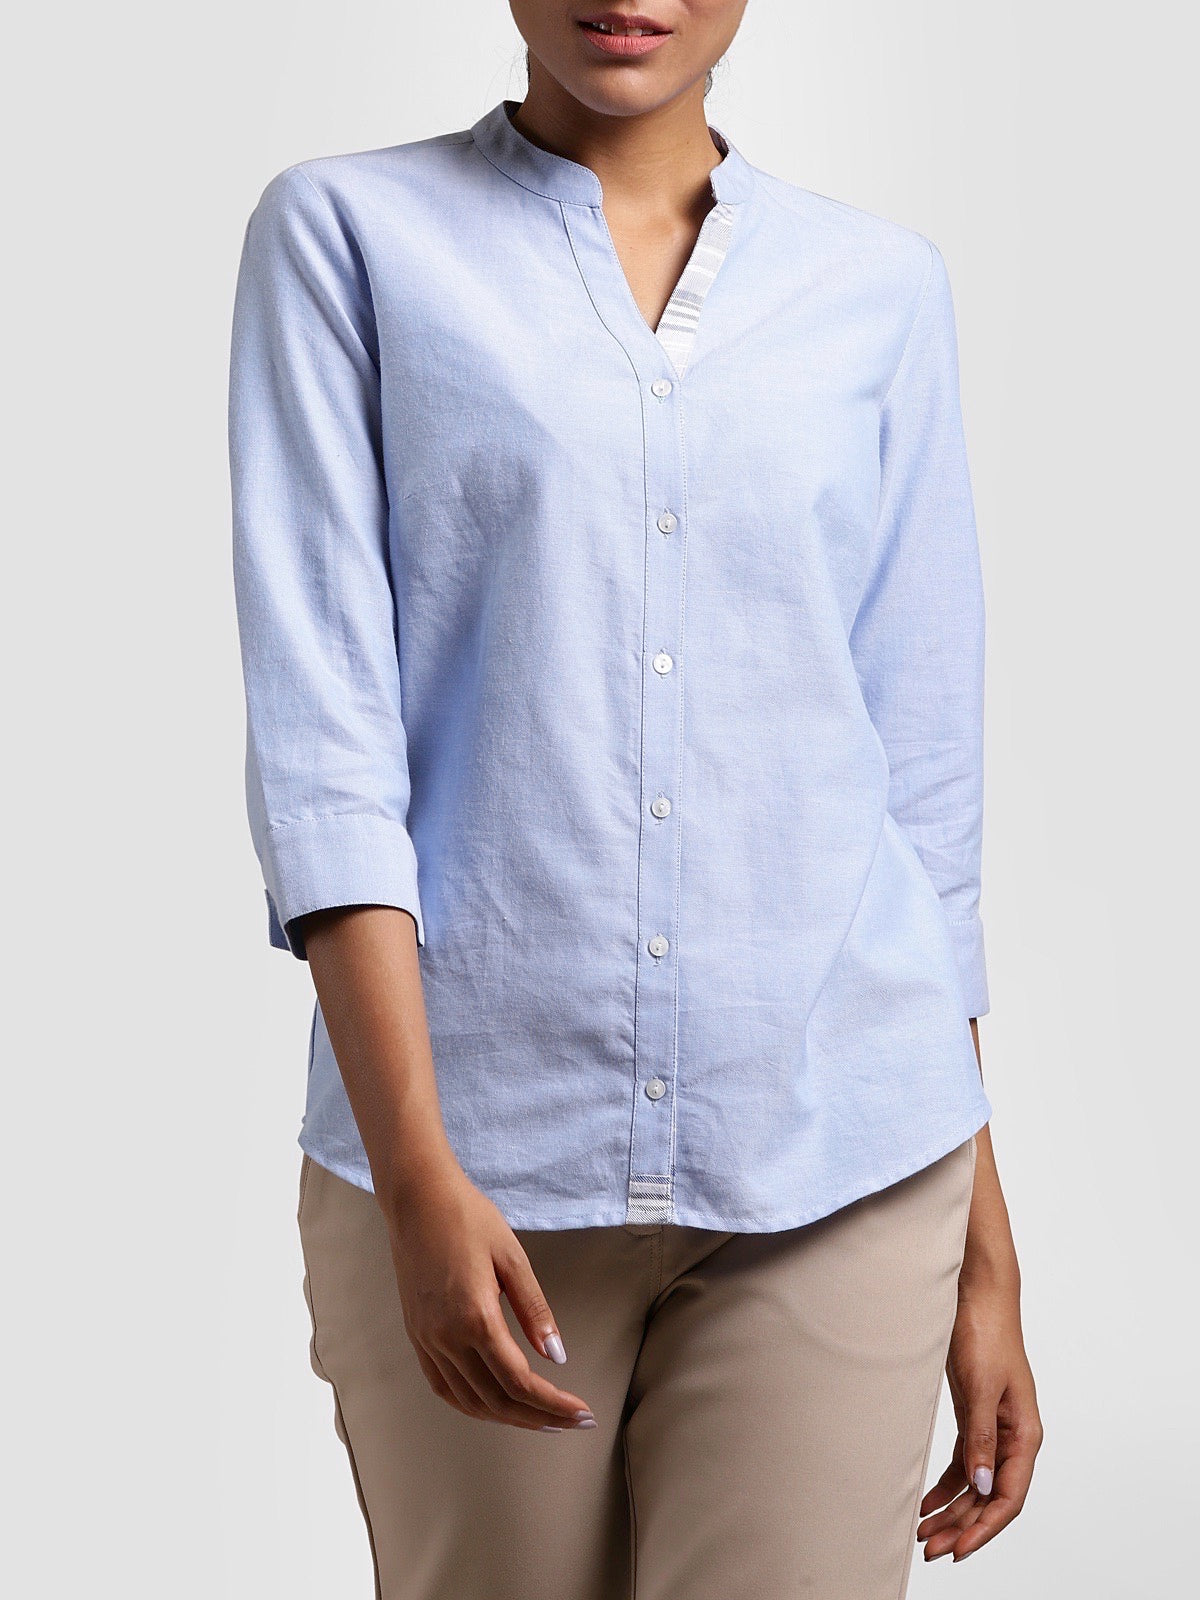 Mandarin Collar Quarter Sleeve Shirt - Blue